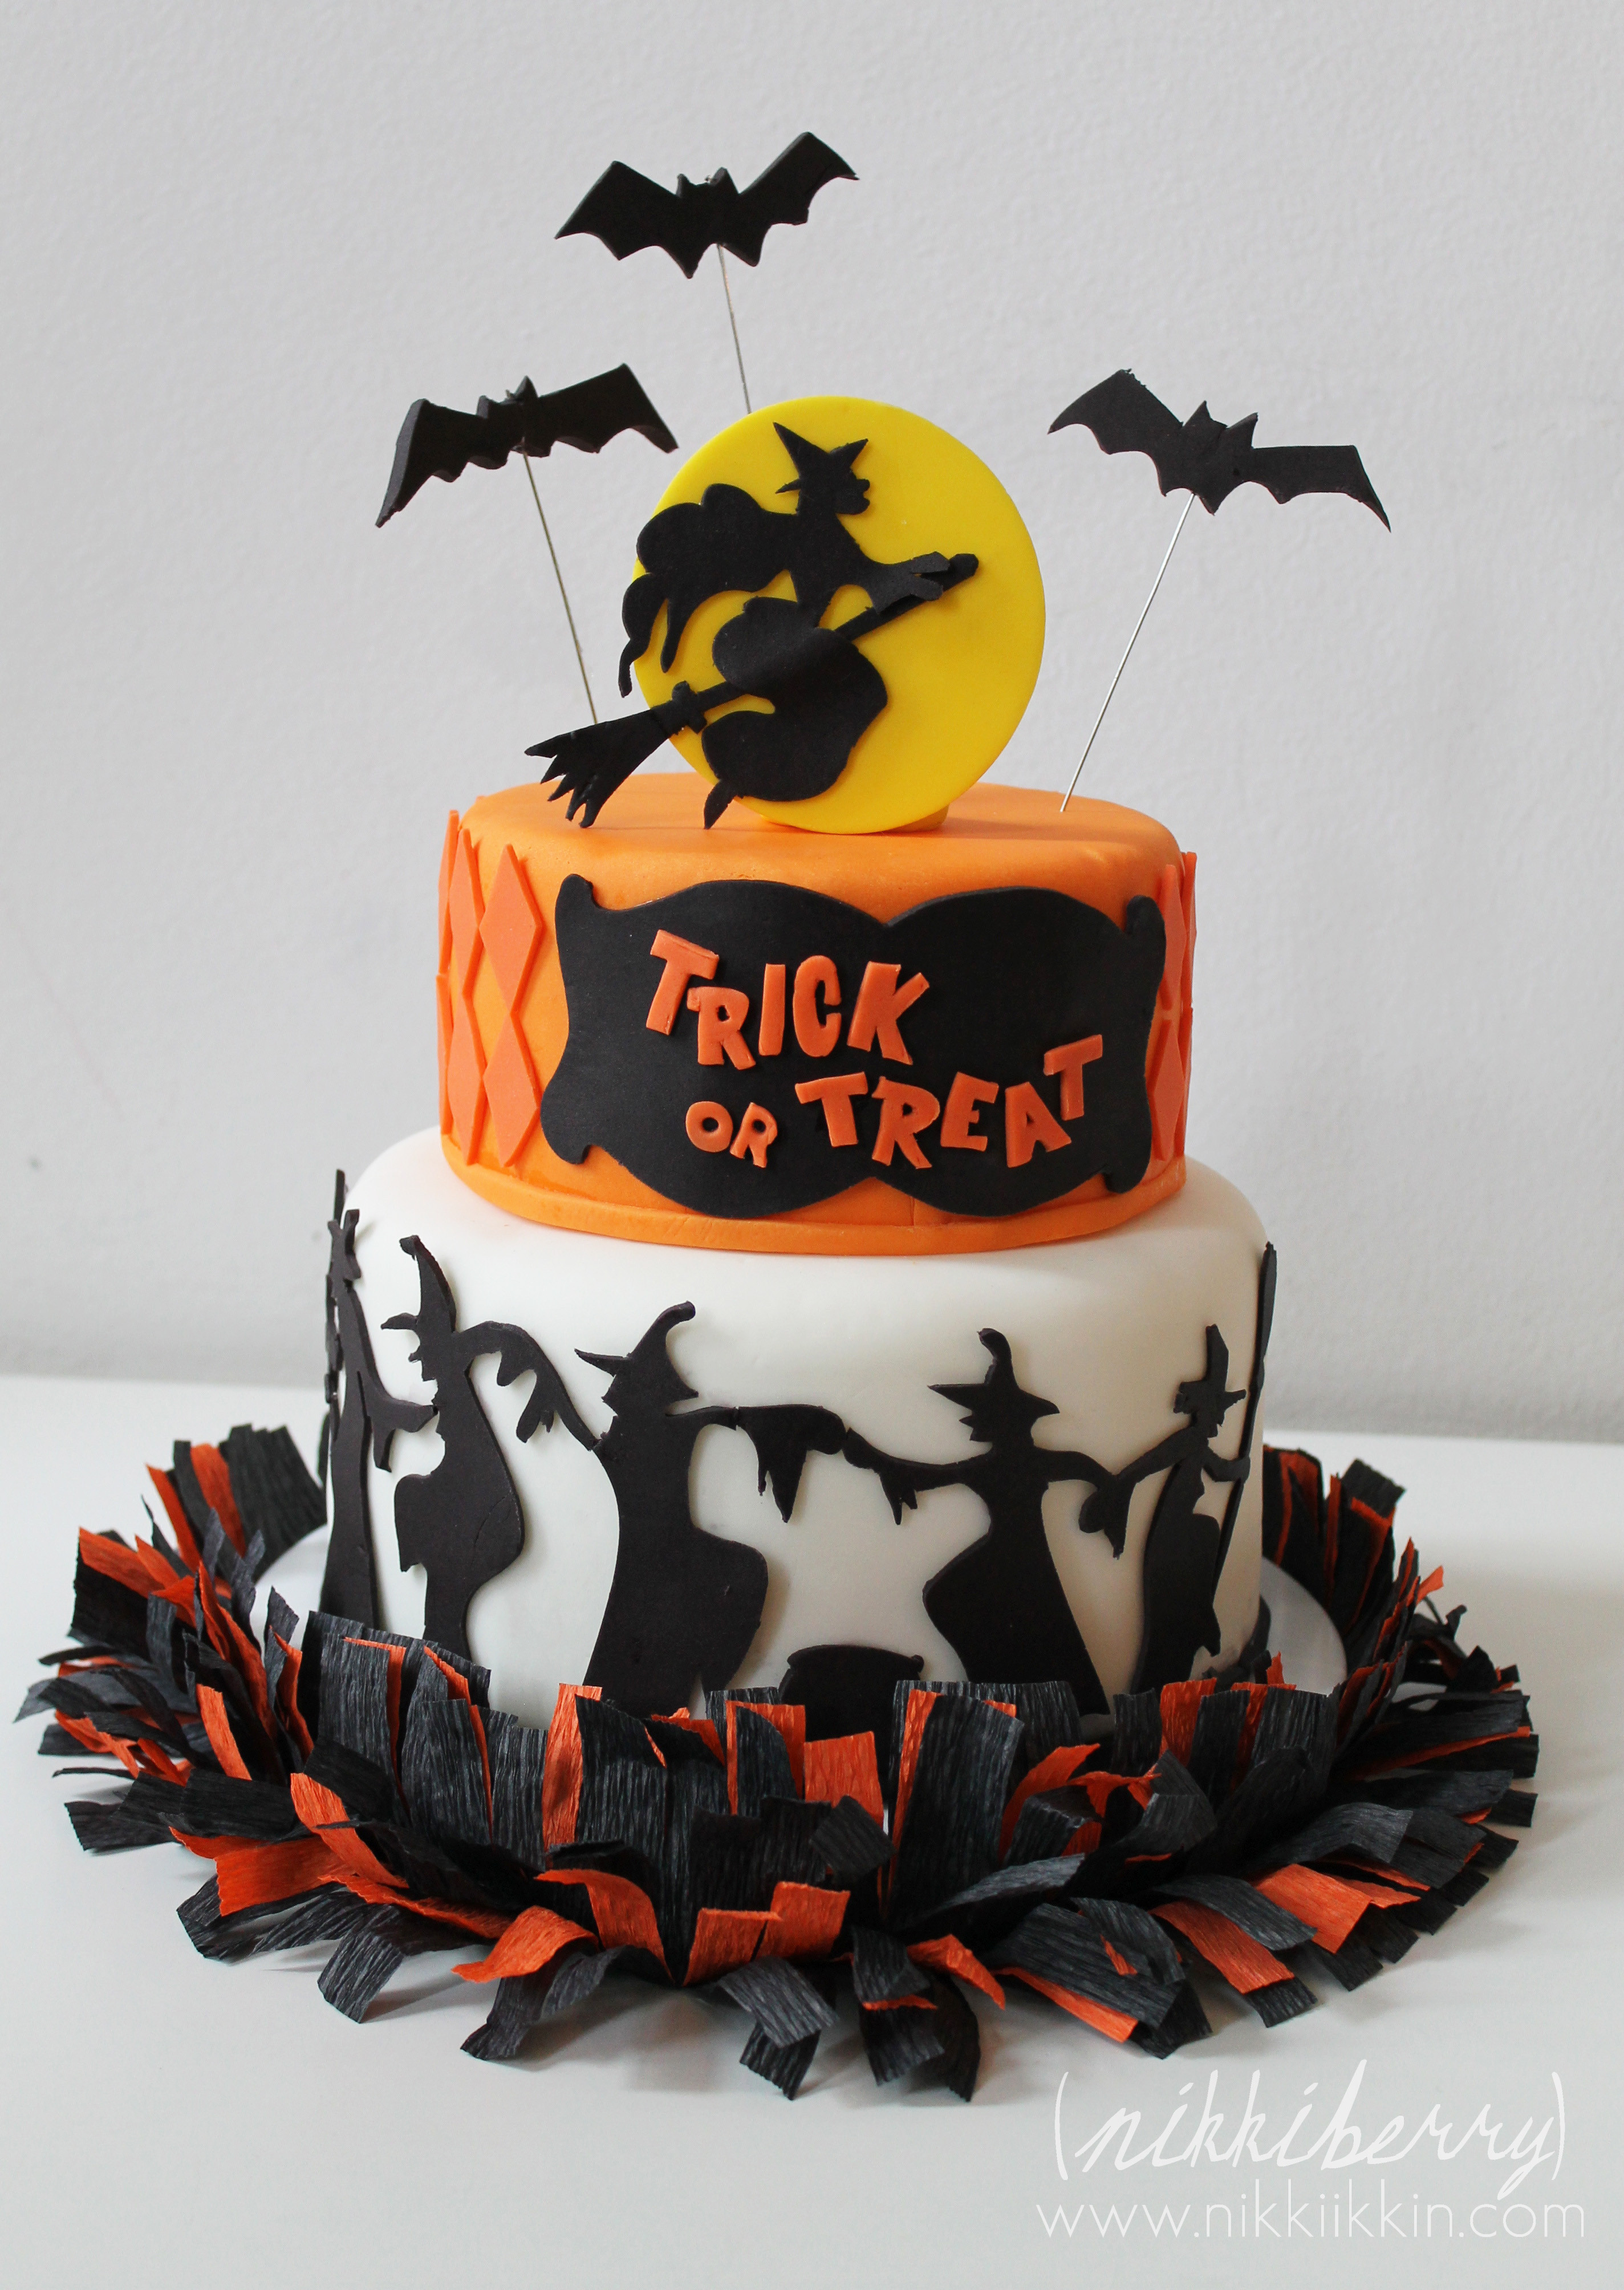 Halloween Cakes Decorations Ideas  Halloween Cakes – Decoration Ideas